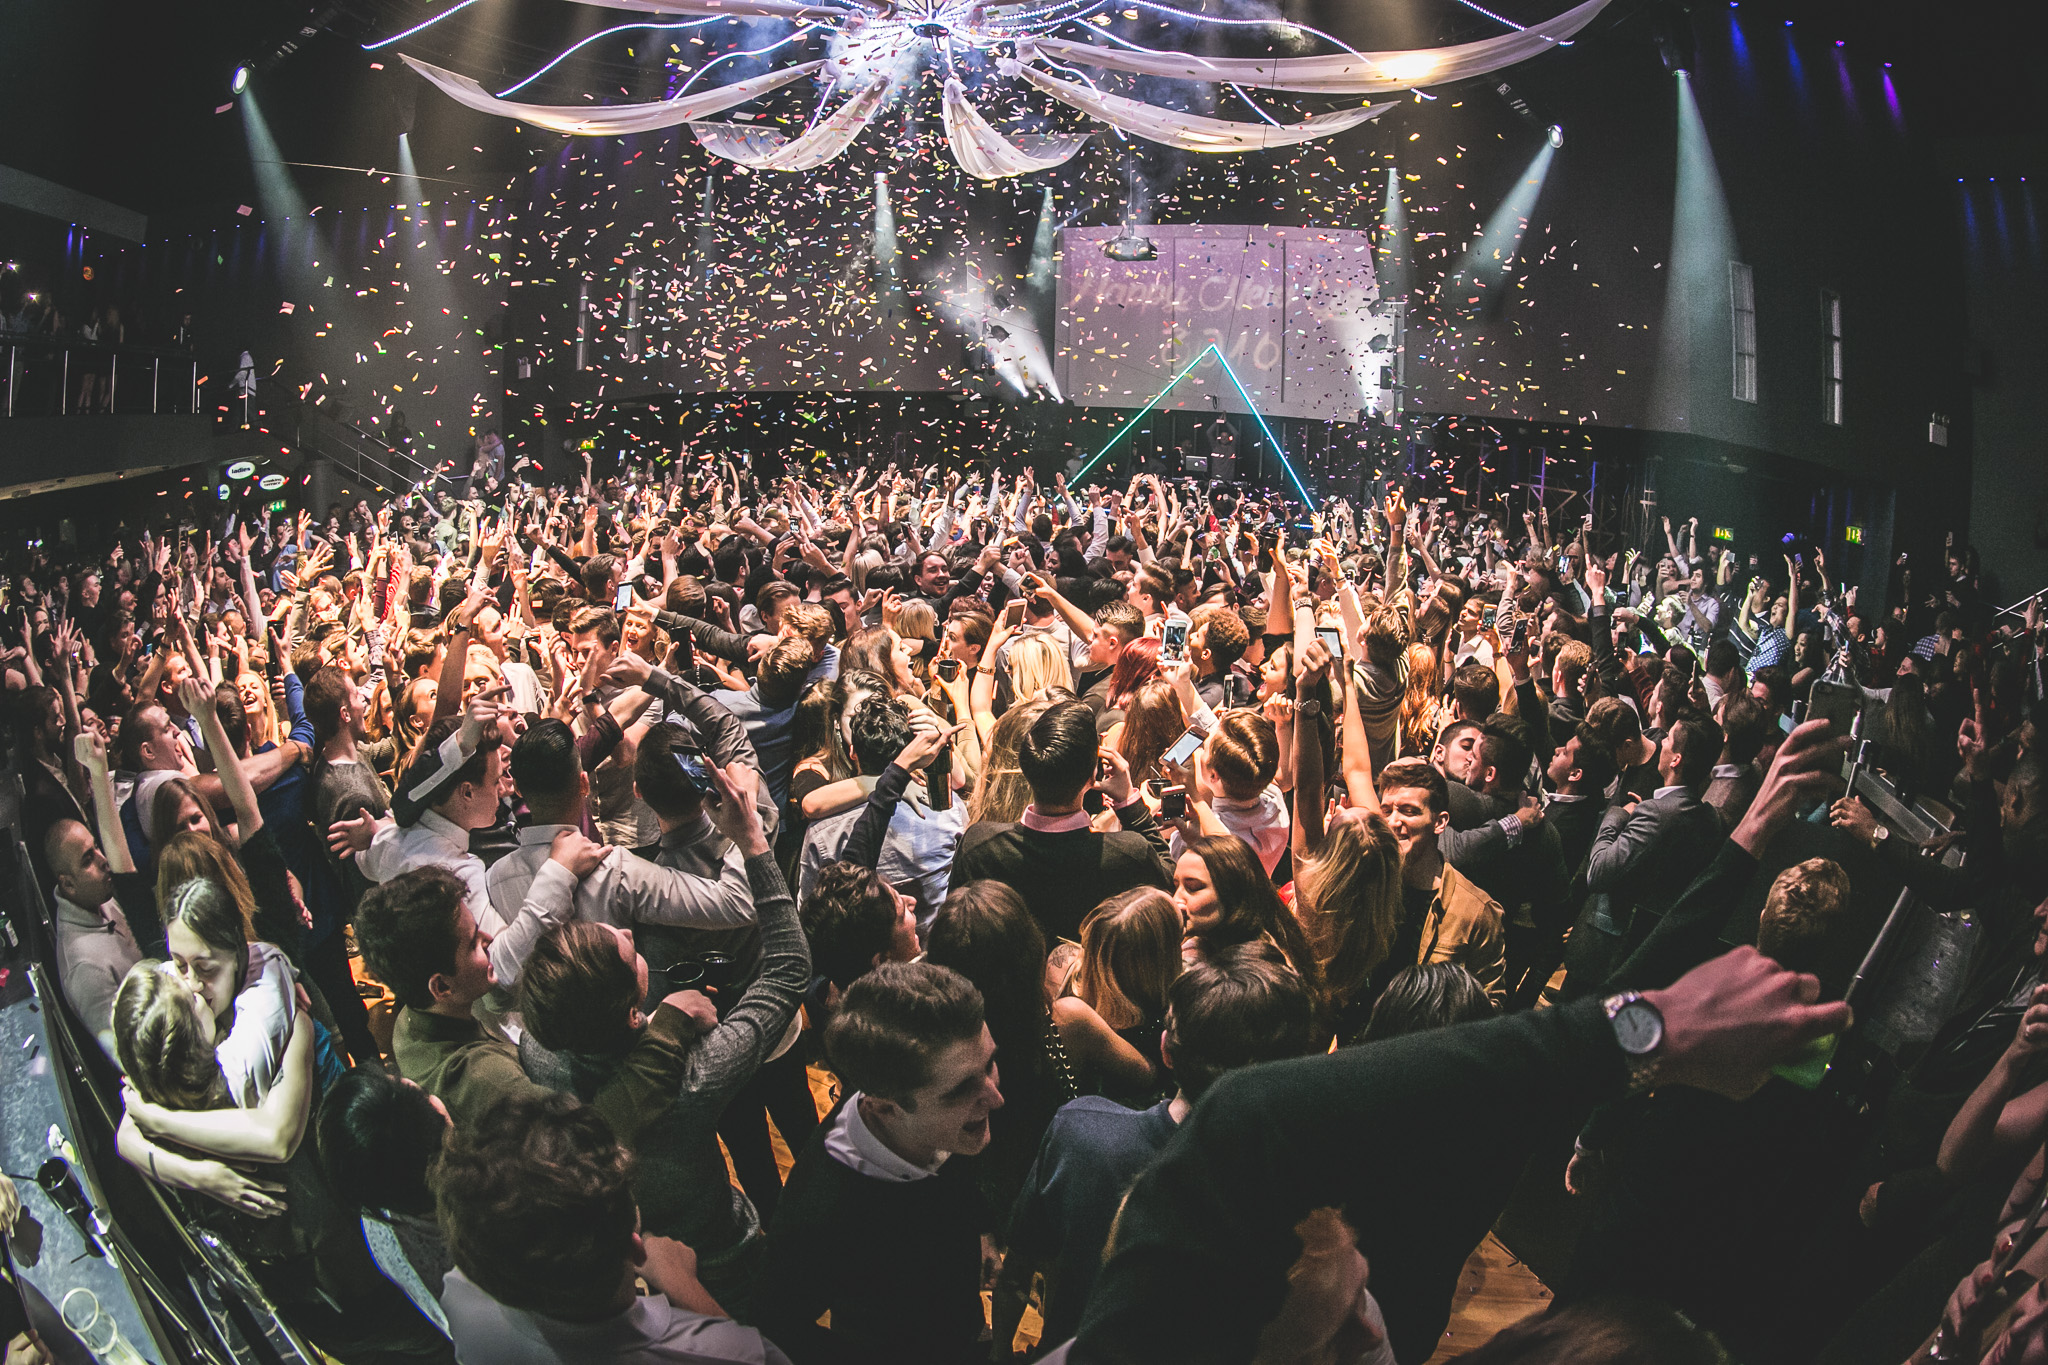 Premium bar and club operator commits to UK nightlife with £8m investment plan